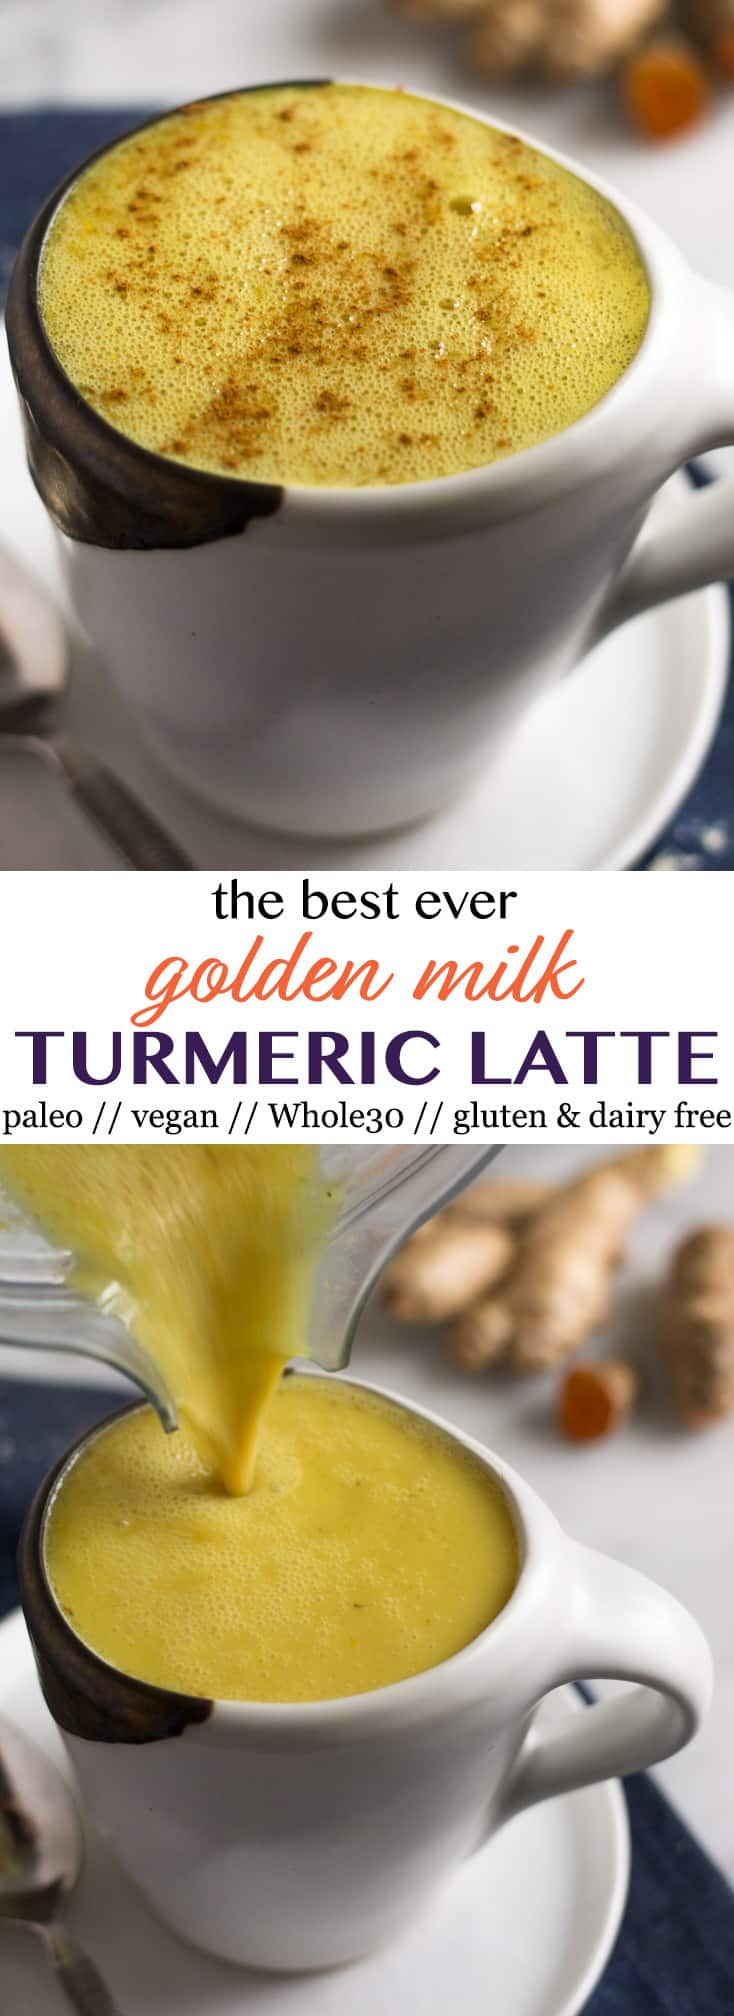 Pinterest image for The Best Ever Golden Milk Turmeric Latte